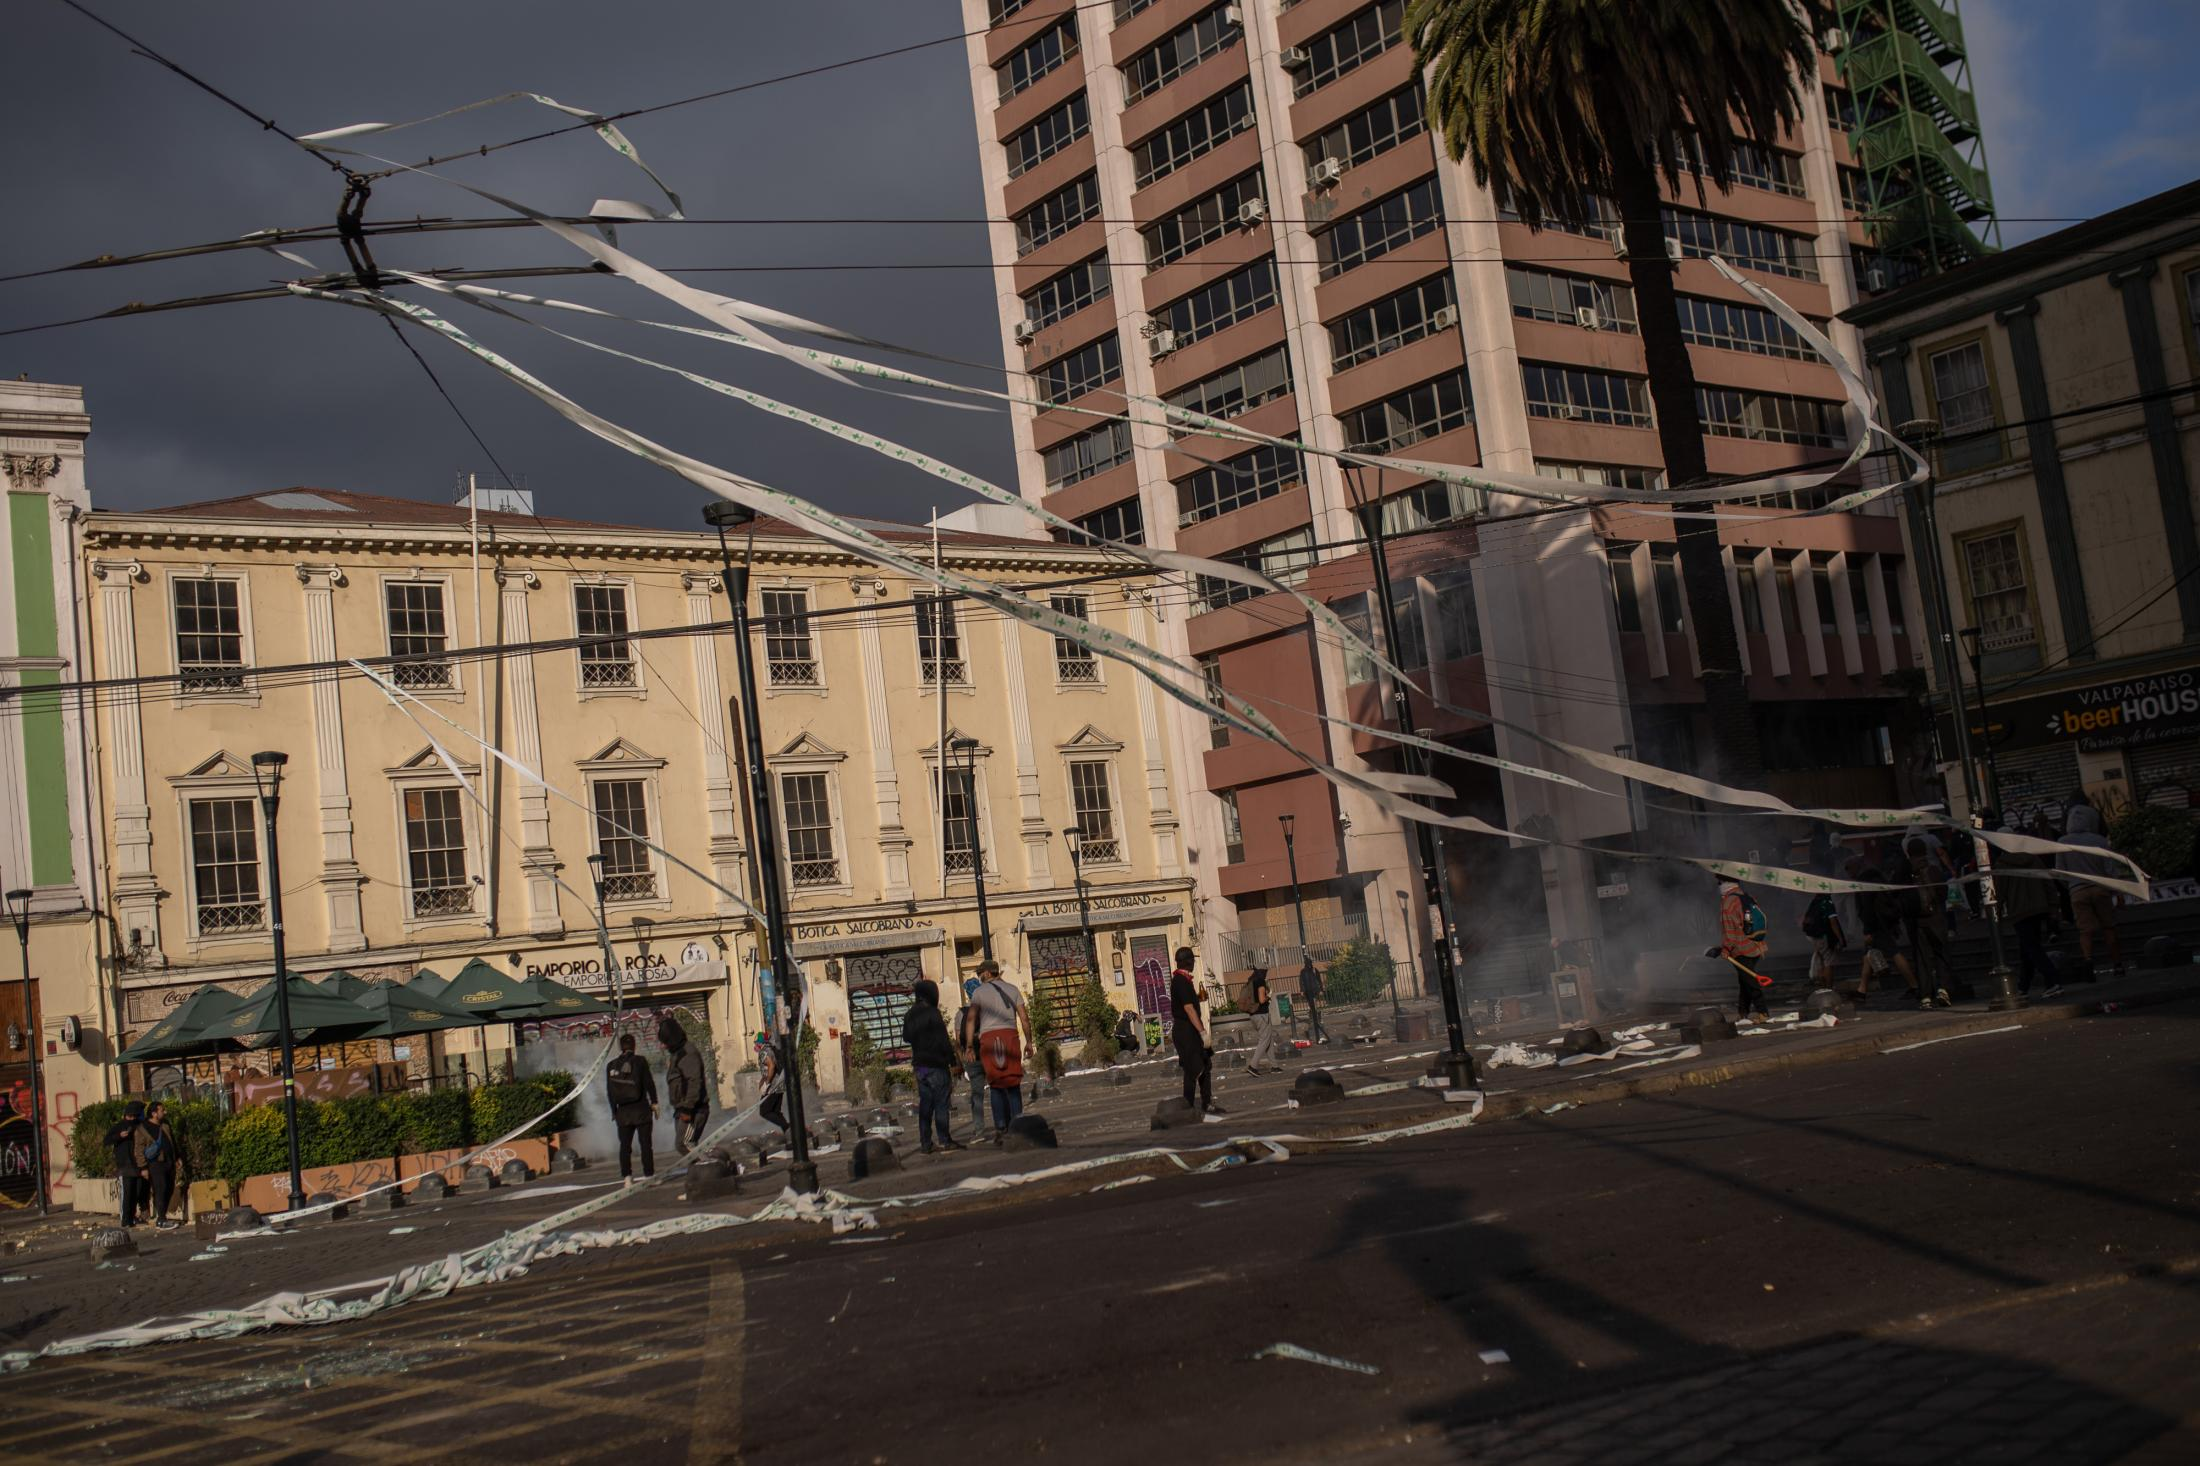 November 12, 2019. Anibal Pinto square, the center of the protests in Valparaiso, after a day of clashes and riots.